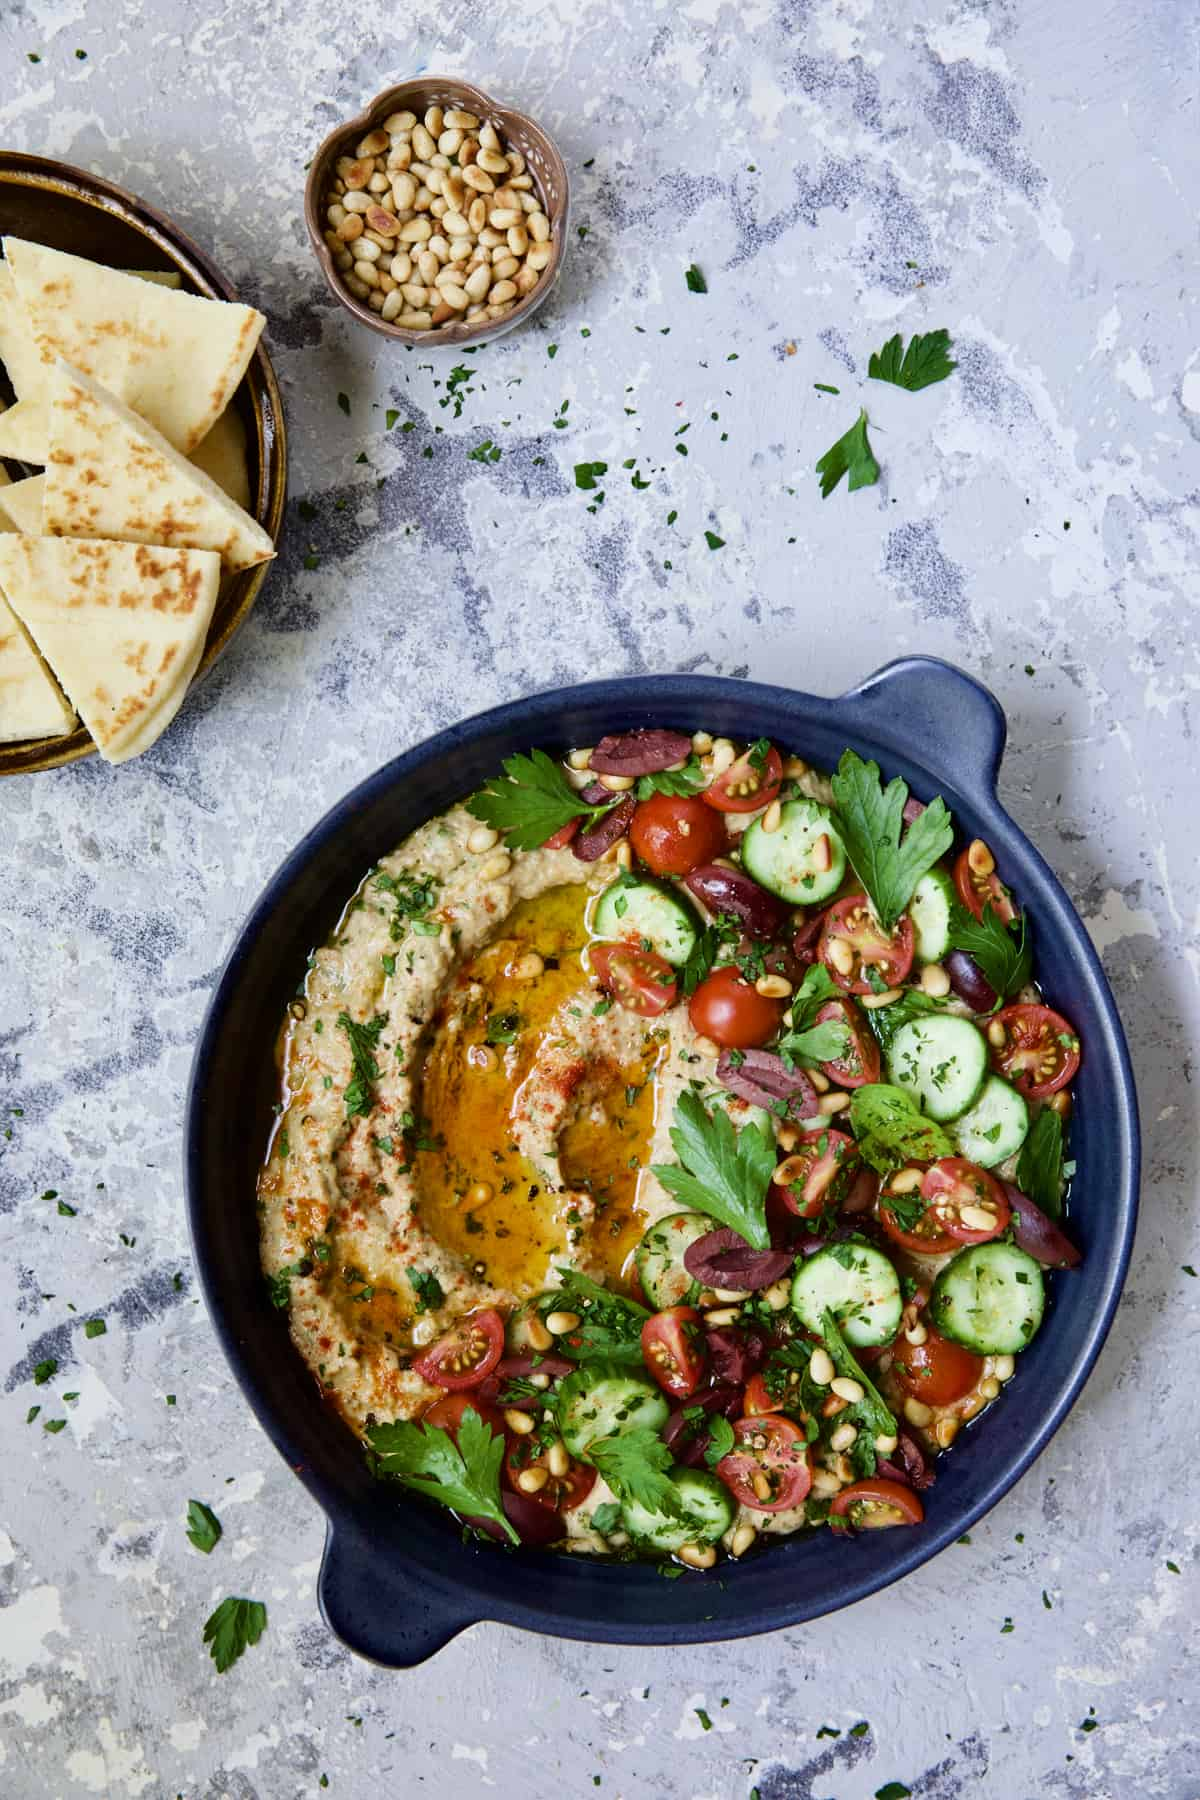 Loaded Roasted Eggplant Dip (Baba Ganoush) in blue dish on distressed background with pita chips and pine nuts.